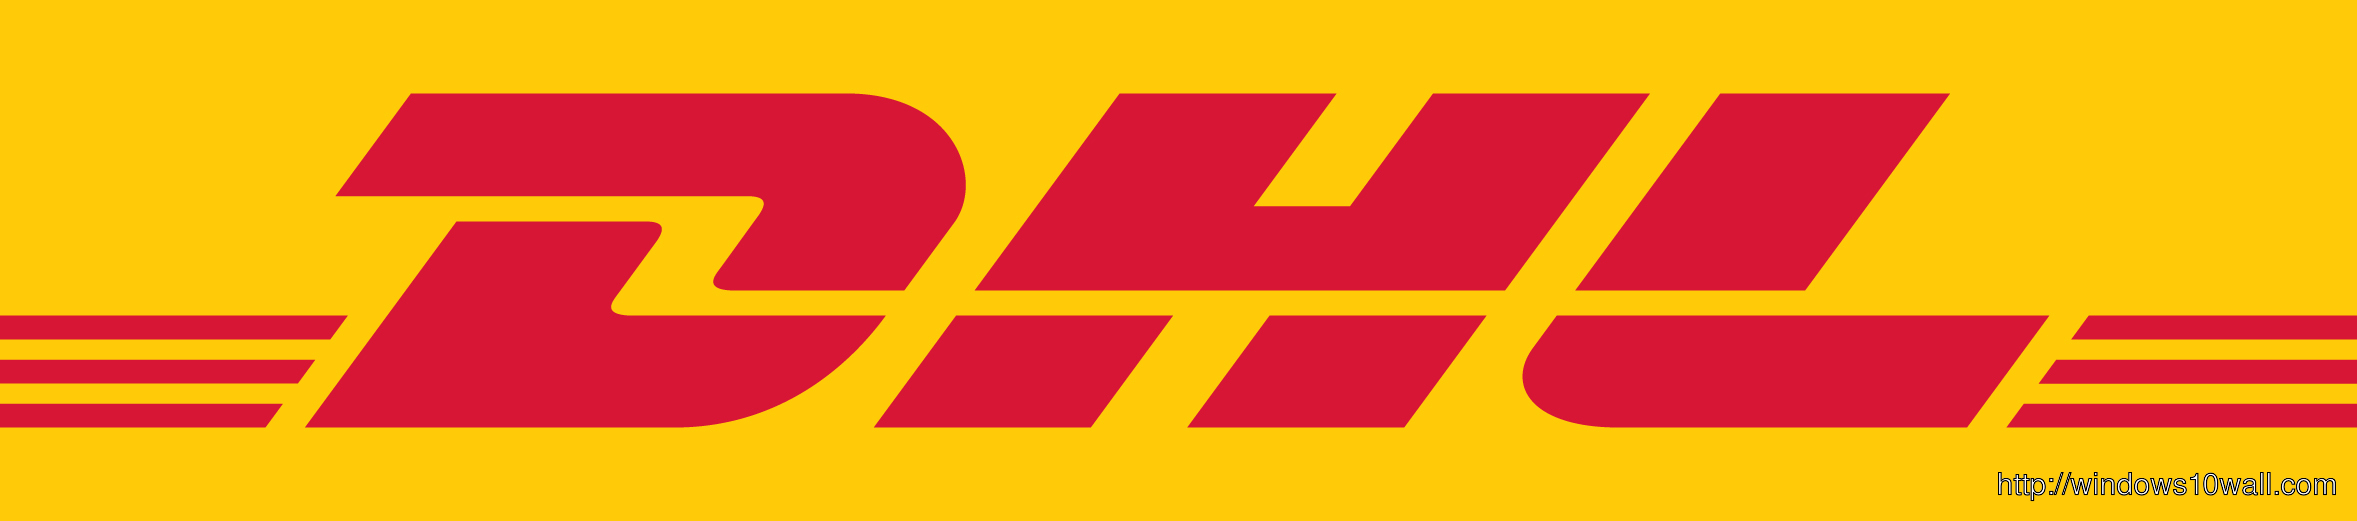 DHL logo - Logo Stage - logo gallery for logo lovers